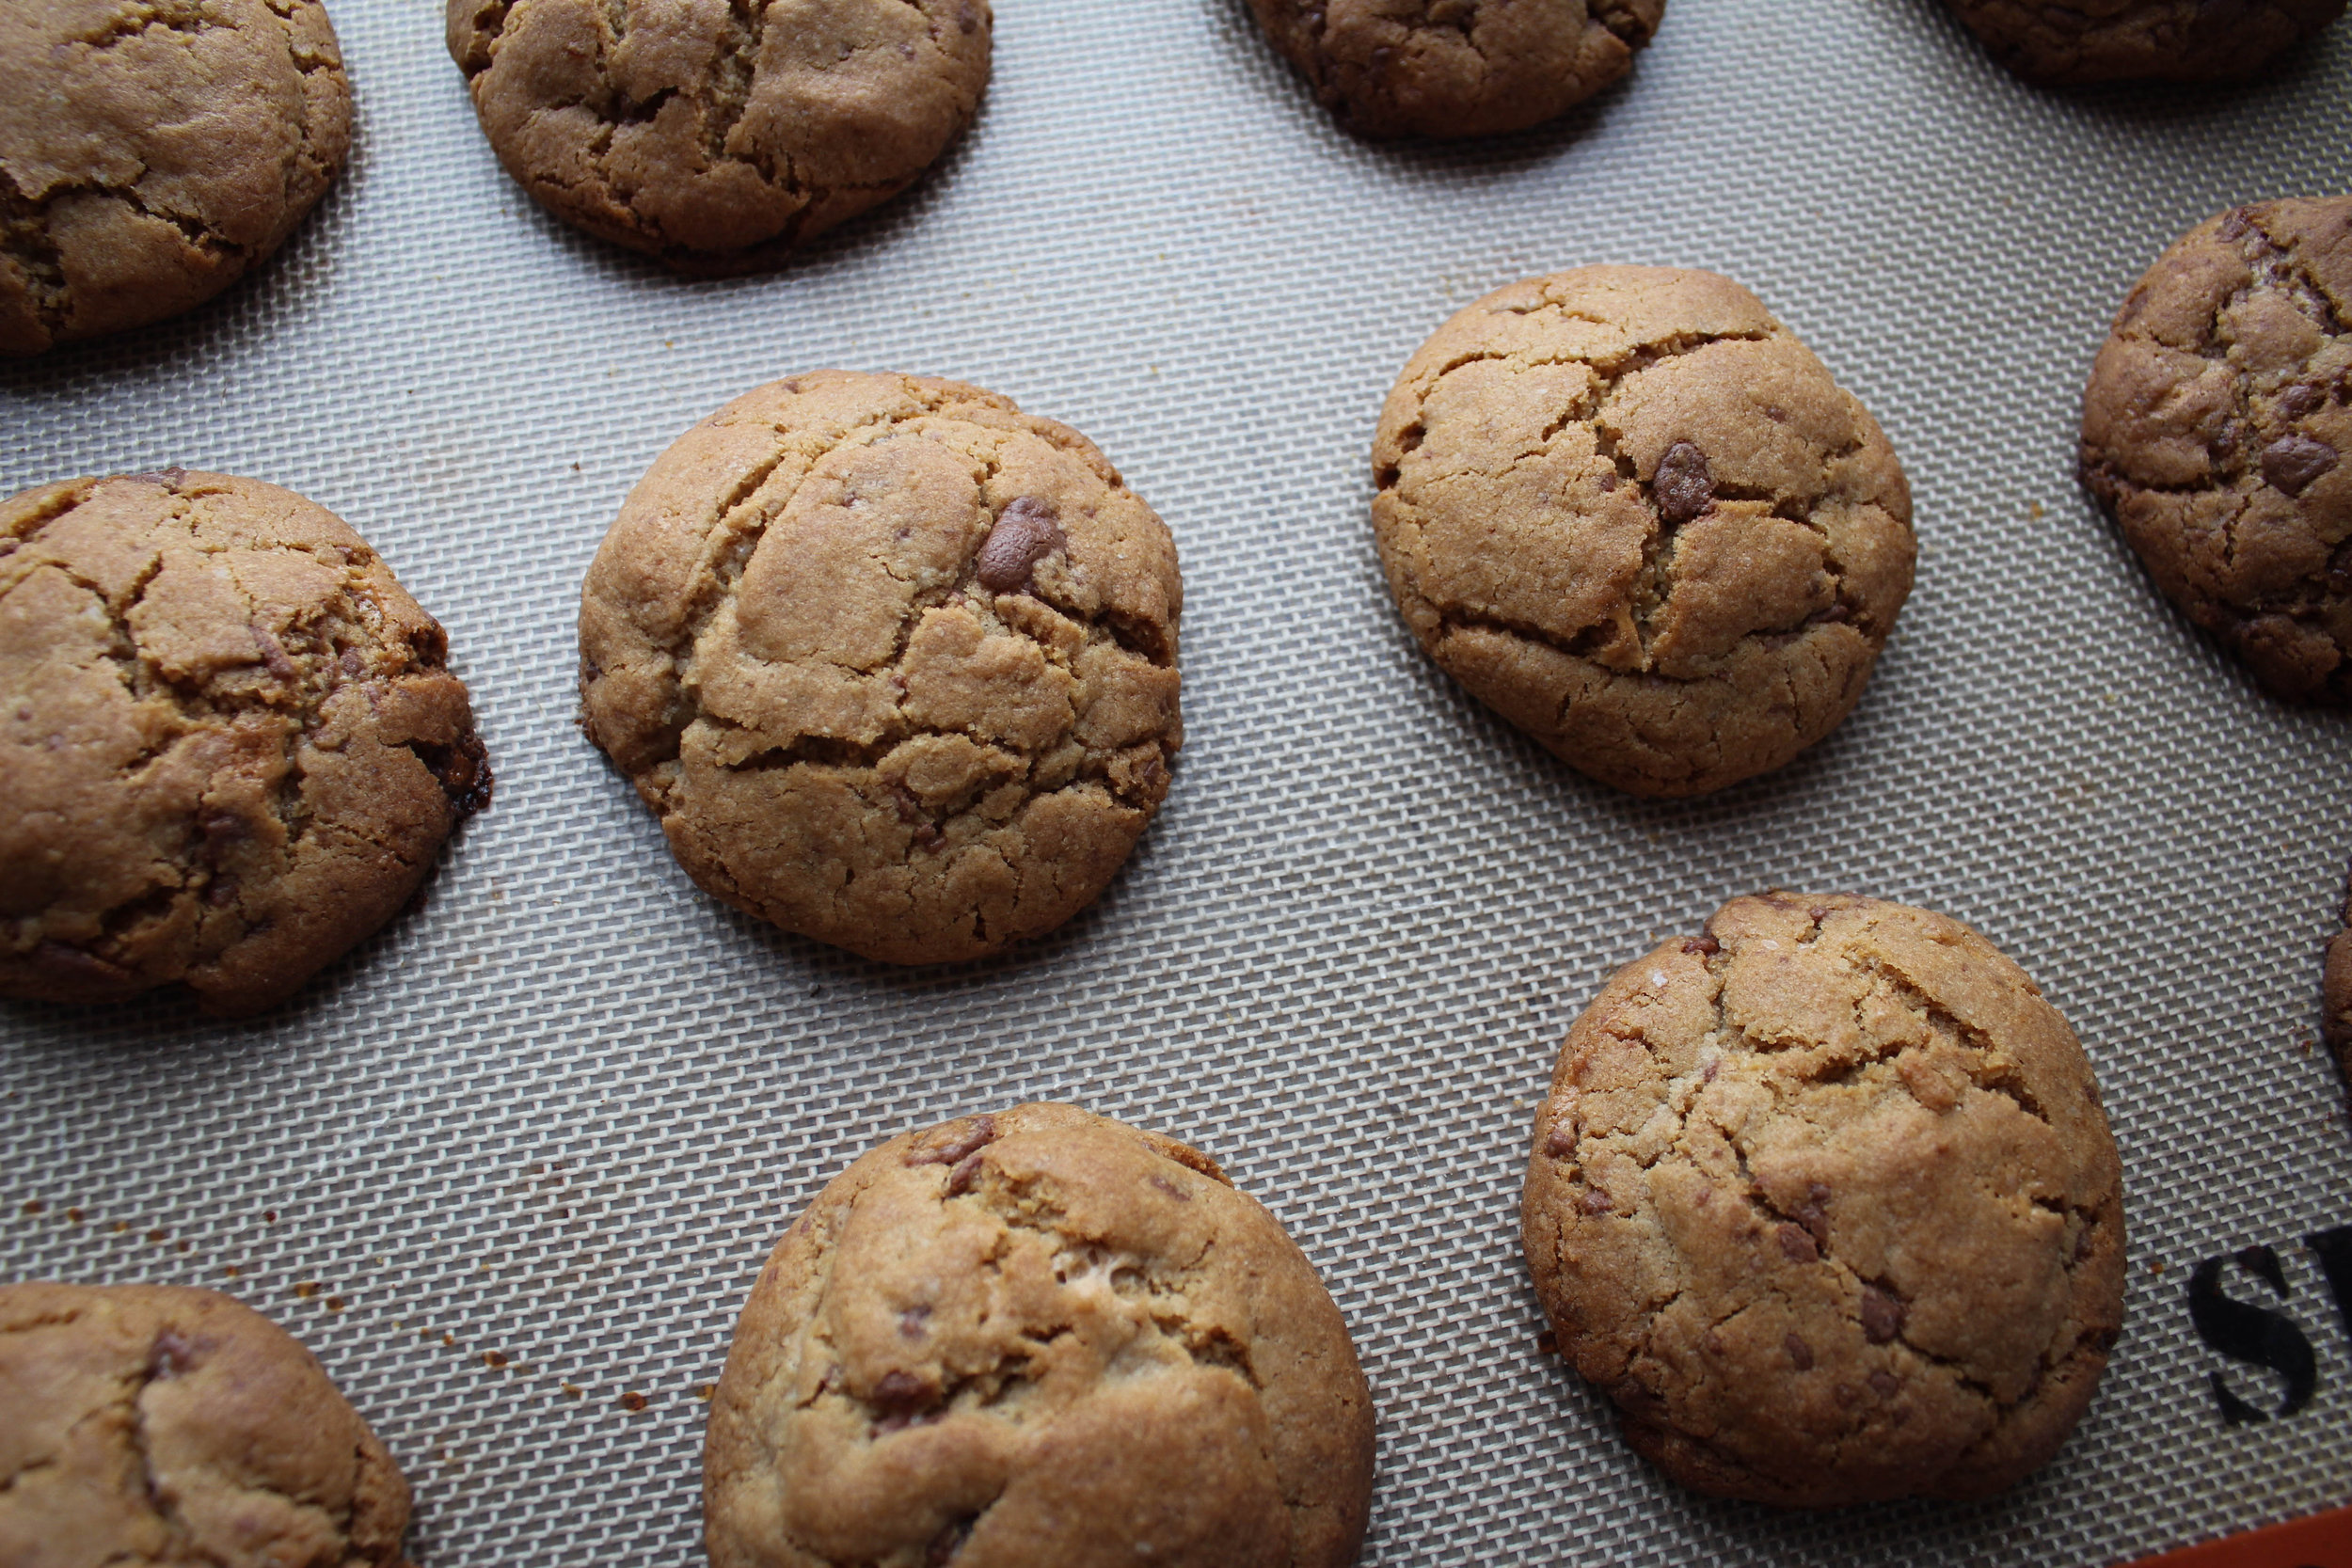 Malted Milk Ball and Tahini Cookies